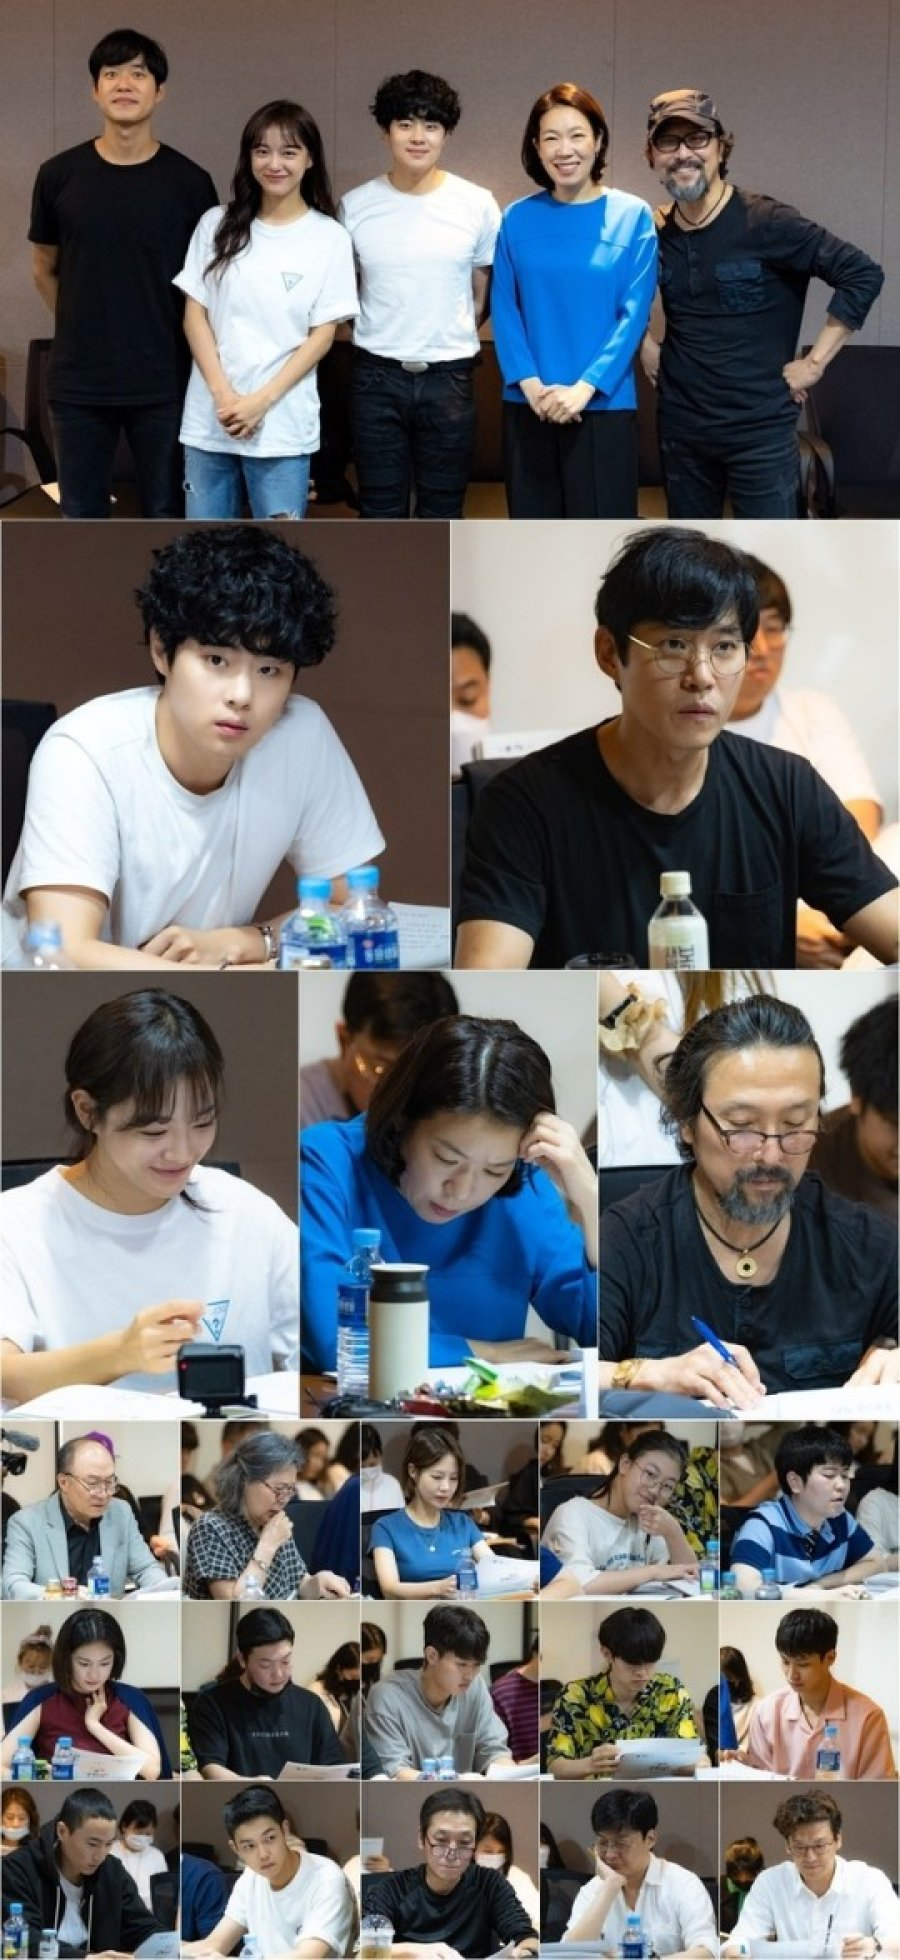 Pembacaan naskah perdana drama Korea The Uncanny Counter